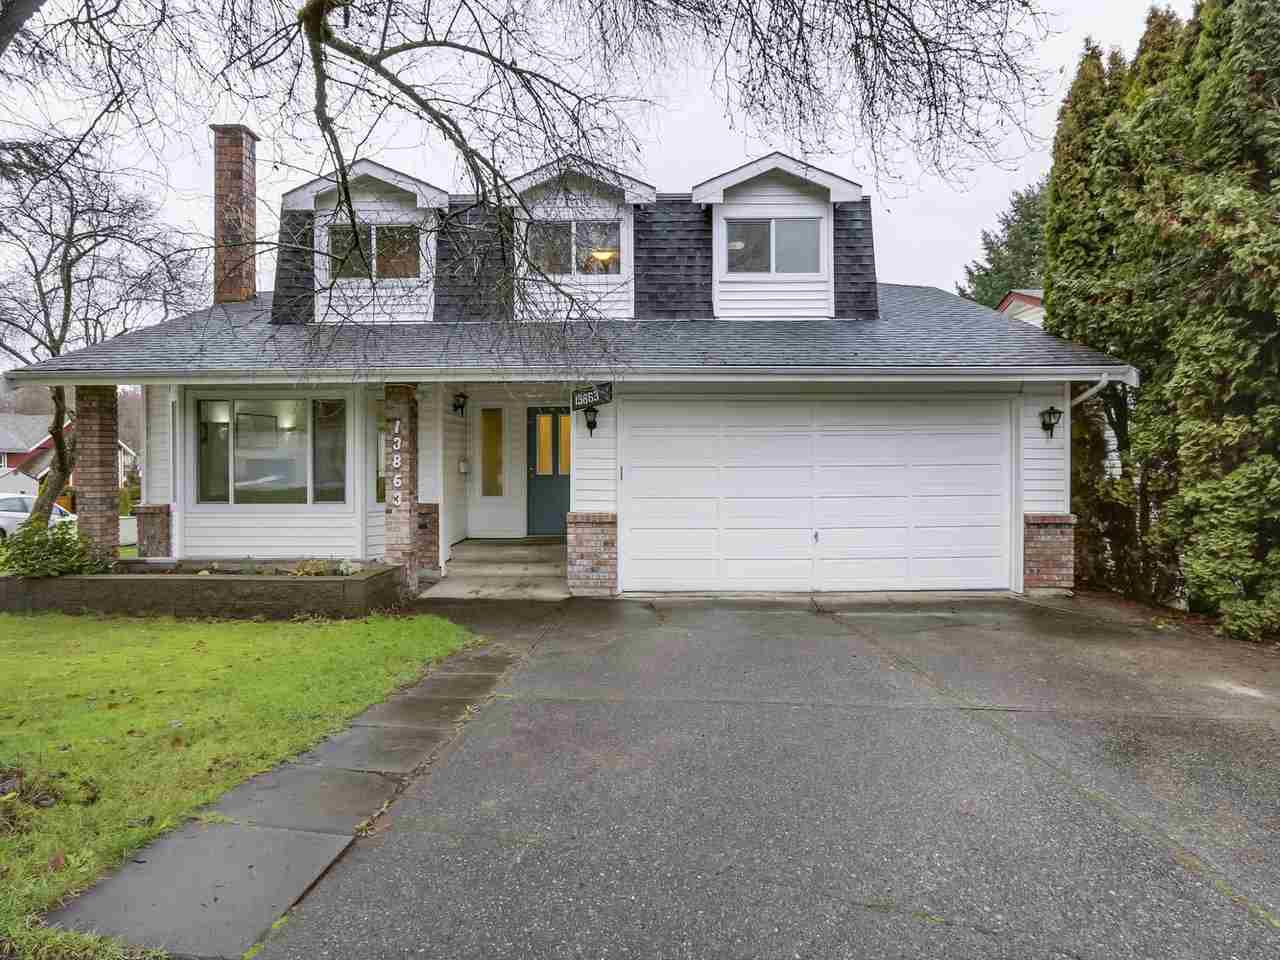 """Main Photo: 13863 80A Avenue in Surrey: East Newton House for sale in """"NEWTON"""" : MLS®# R2327669"""